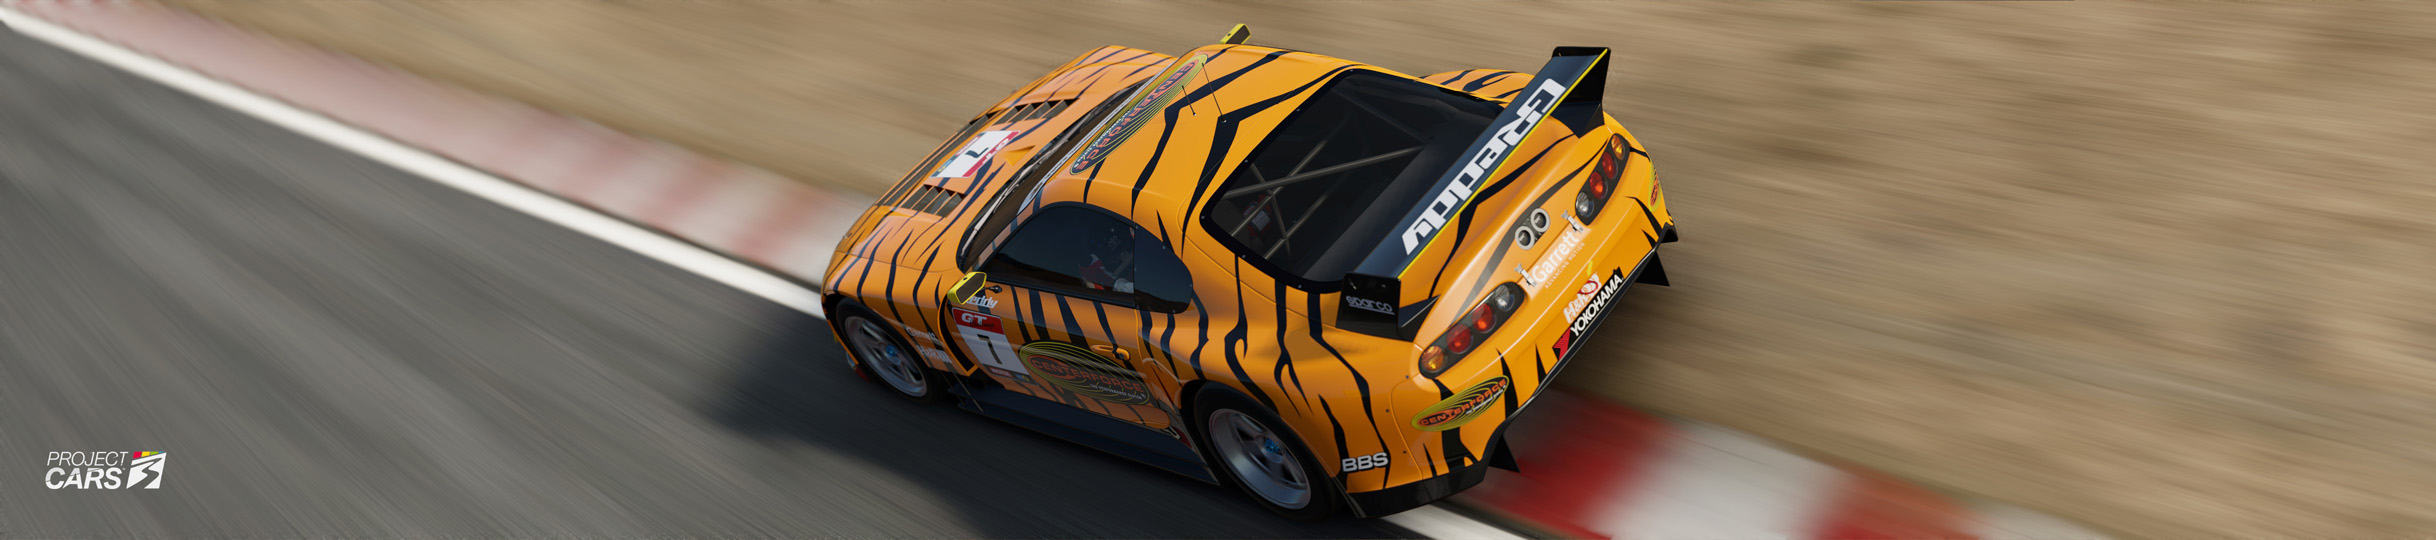 00a PROJECT CARS 3 new DLC 94 TOYOTA SUPRS MkIV RACING crop copy.jpg